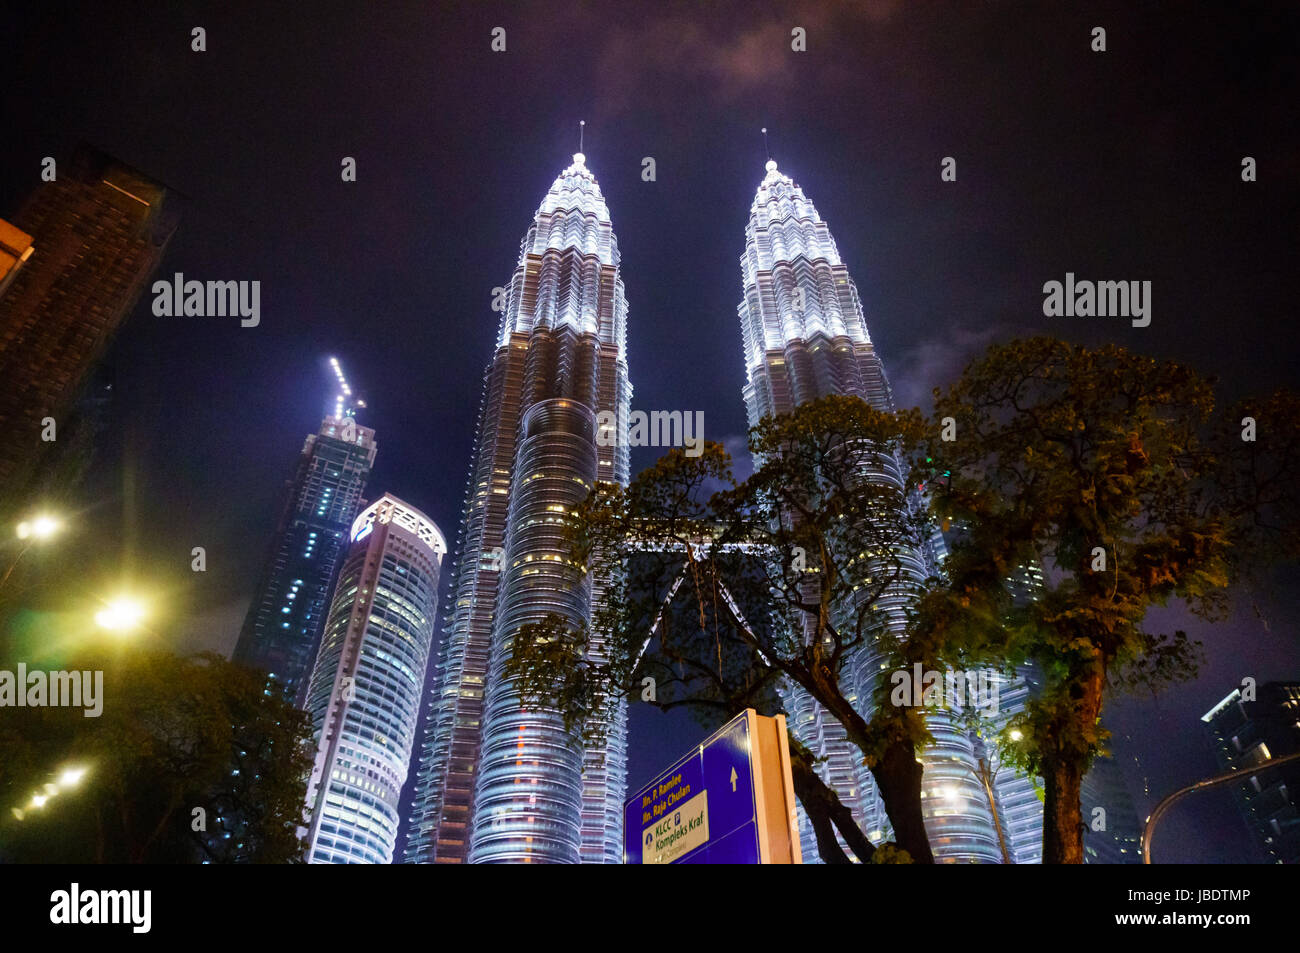 Kuala Lumpur, Malaysia - 5th May 2017: Petronas twin towers on a rainy night with a cloudy sky and pouring rain. Stock Photo